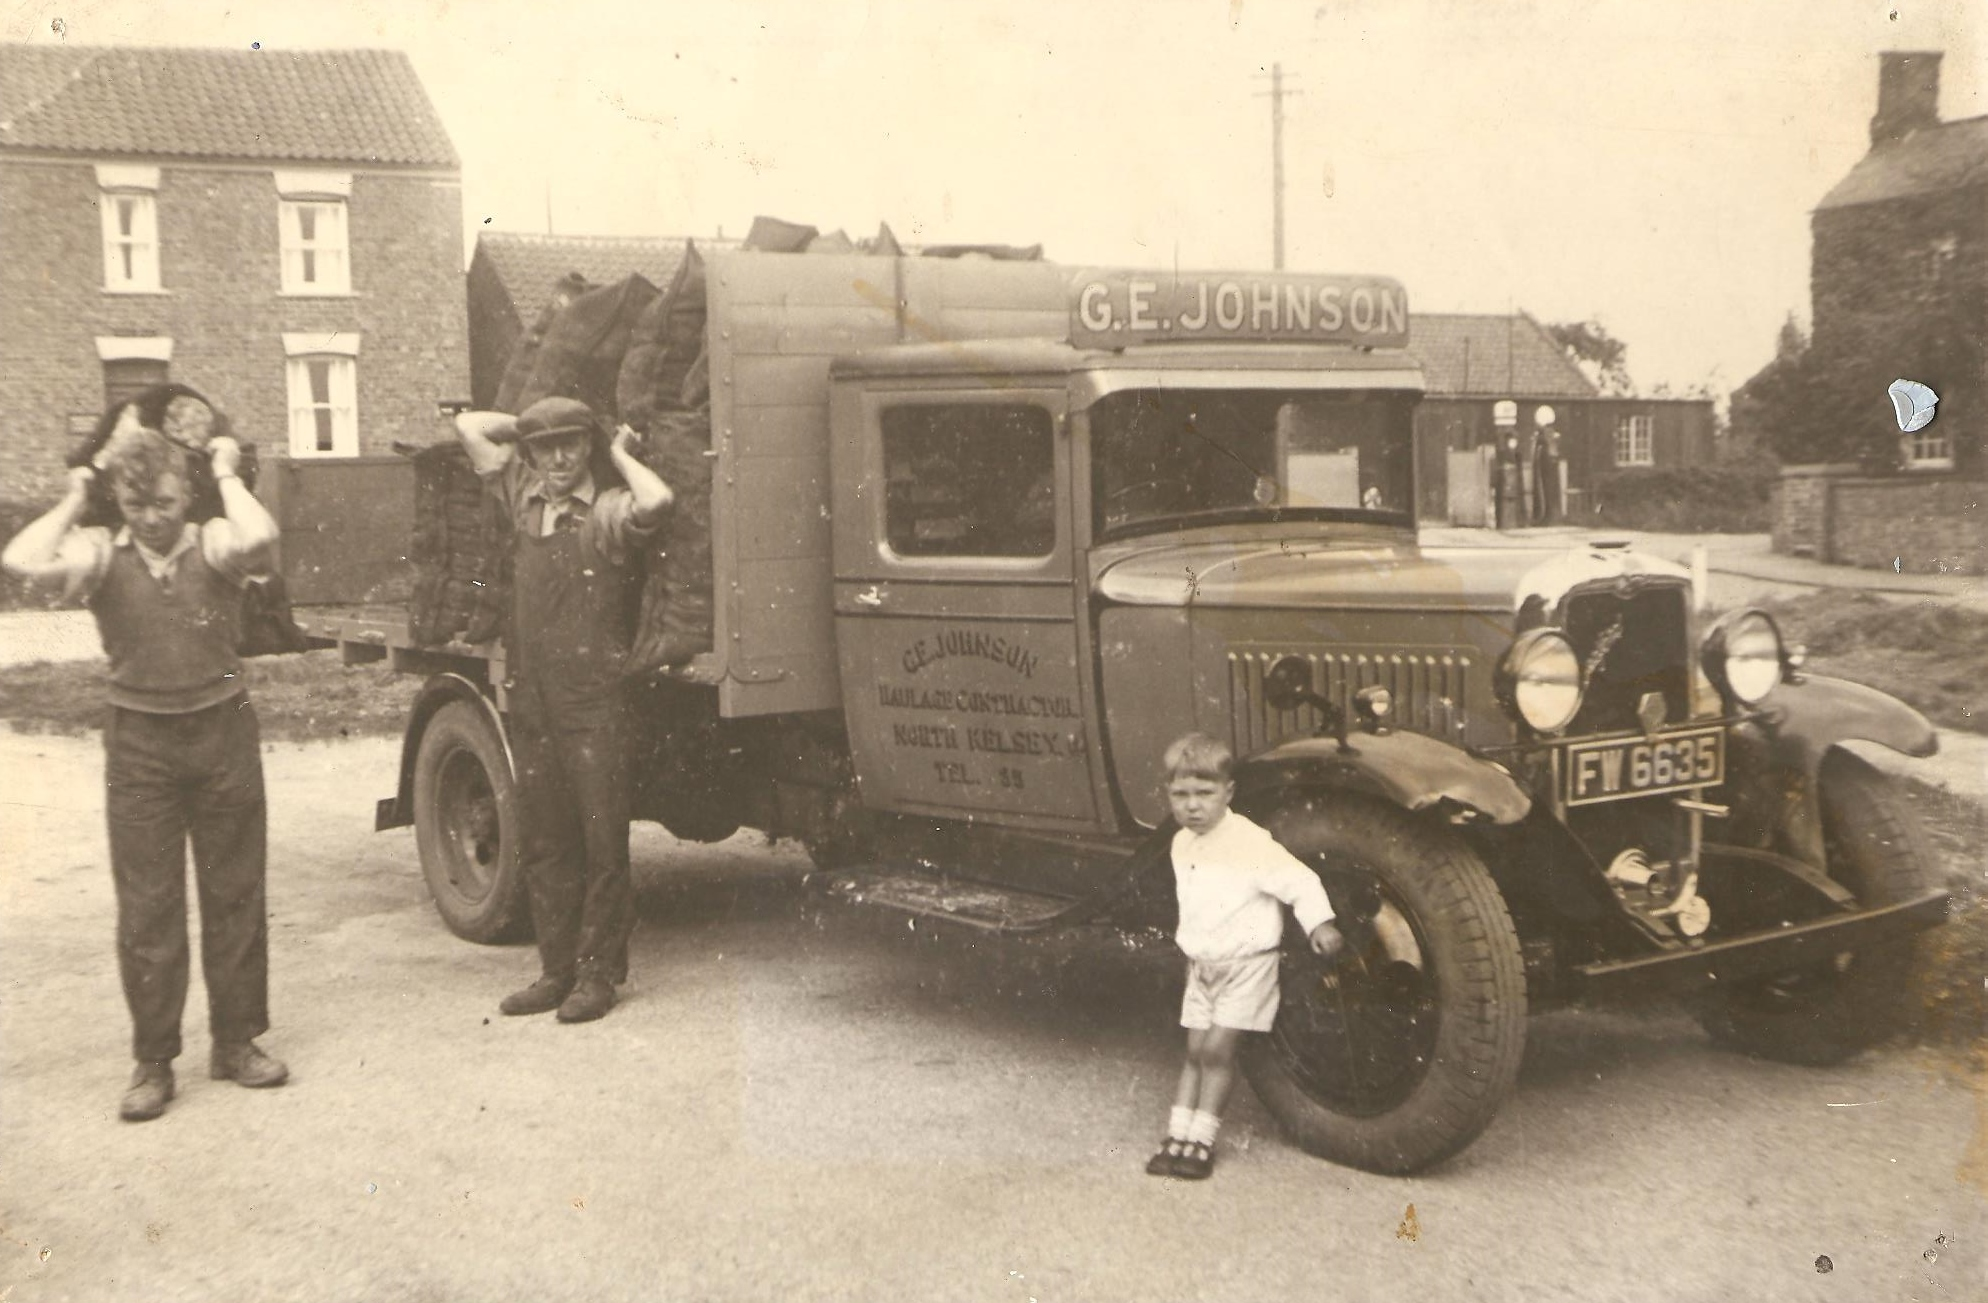 From left to right: George Johnson, Arthur Johnson and Cliff Johnson (aged 5) in 1935